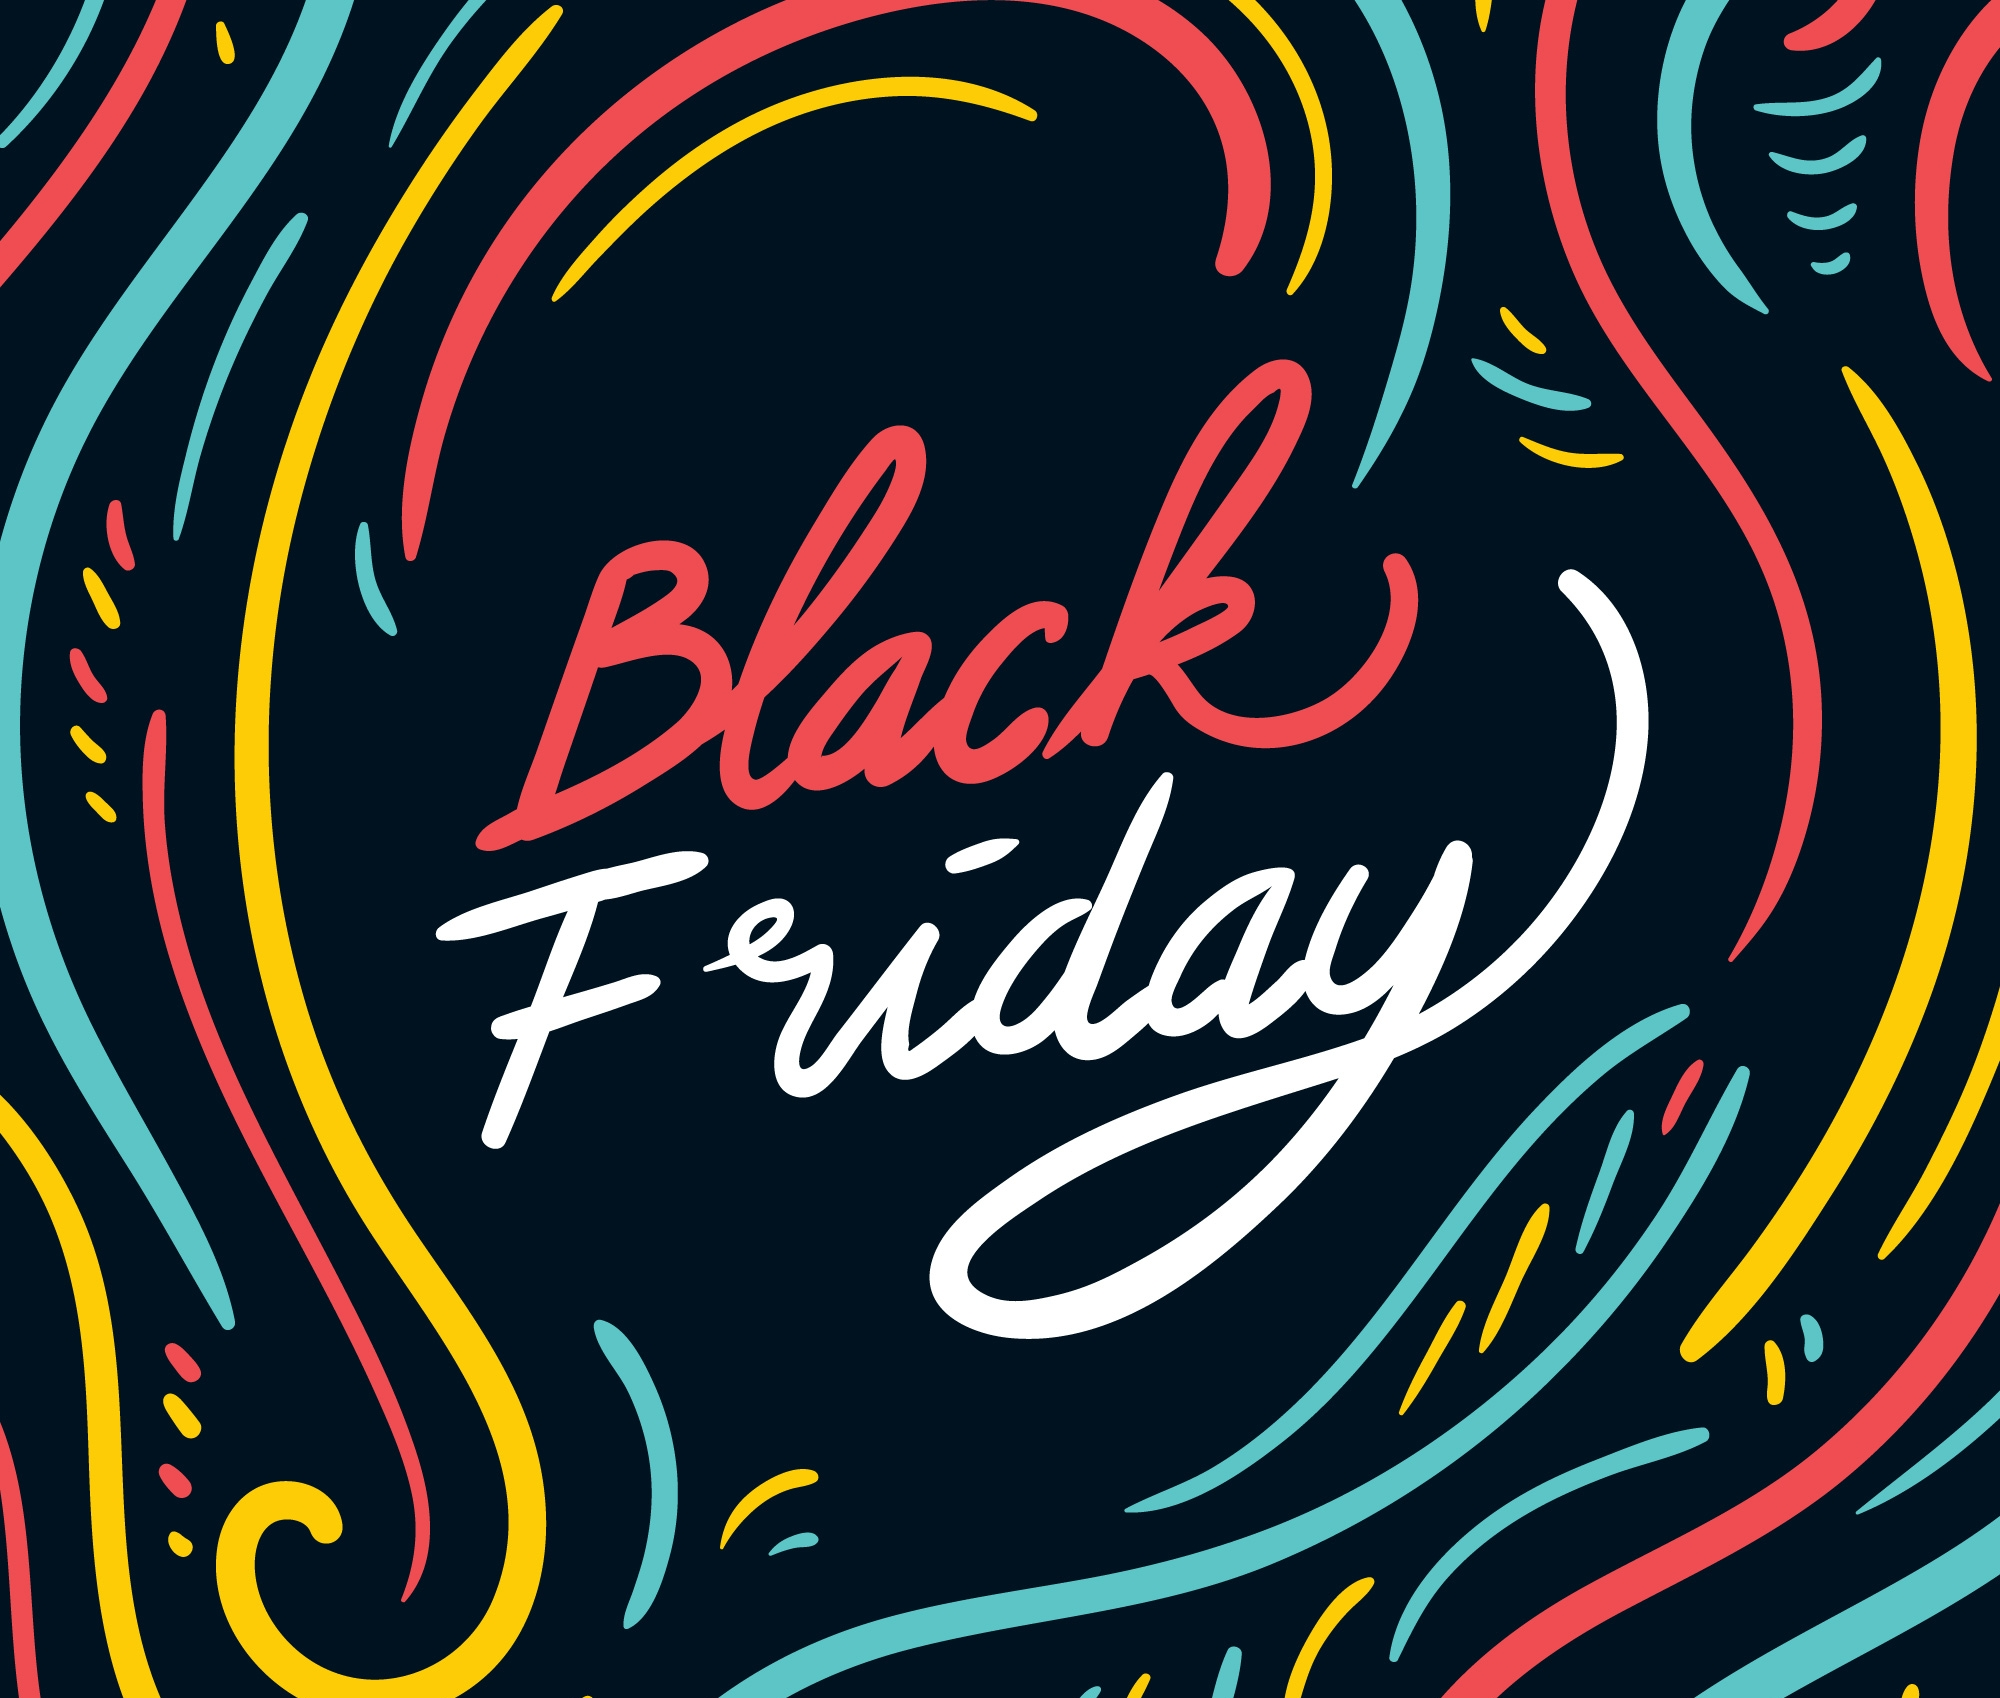 www.freepik.com.multicolor-black-friday_1368331_designed by Freepik